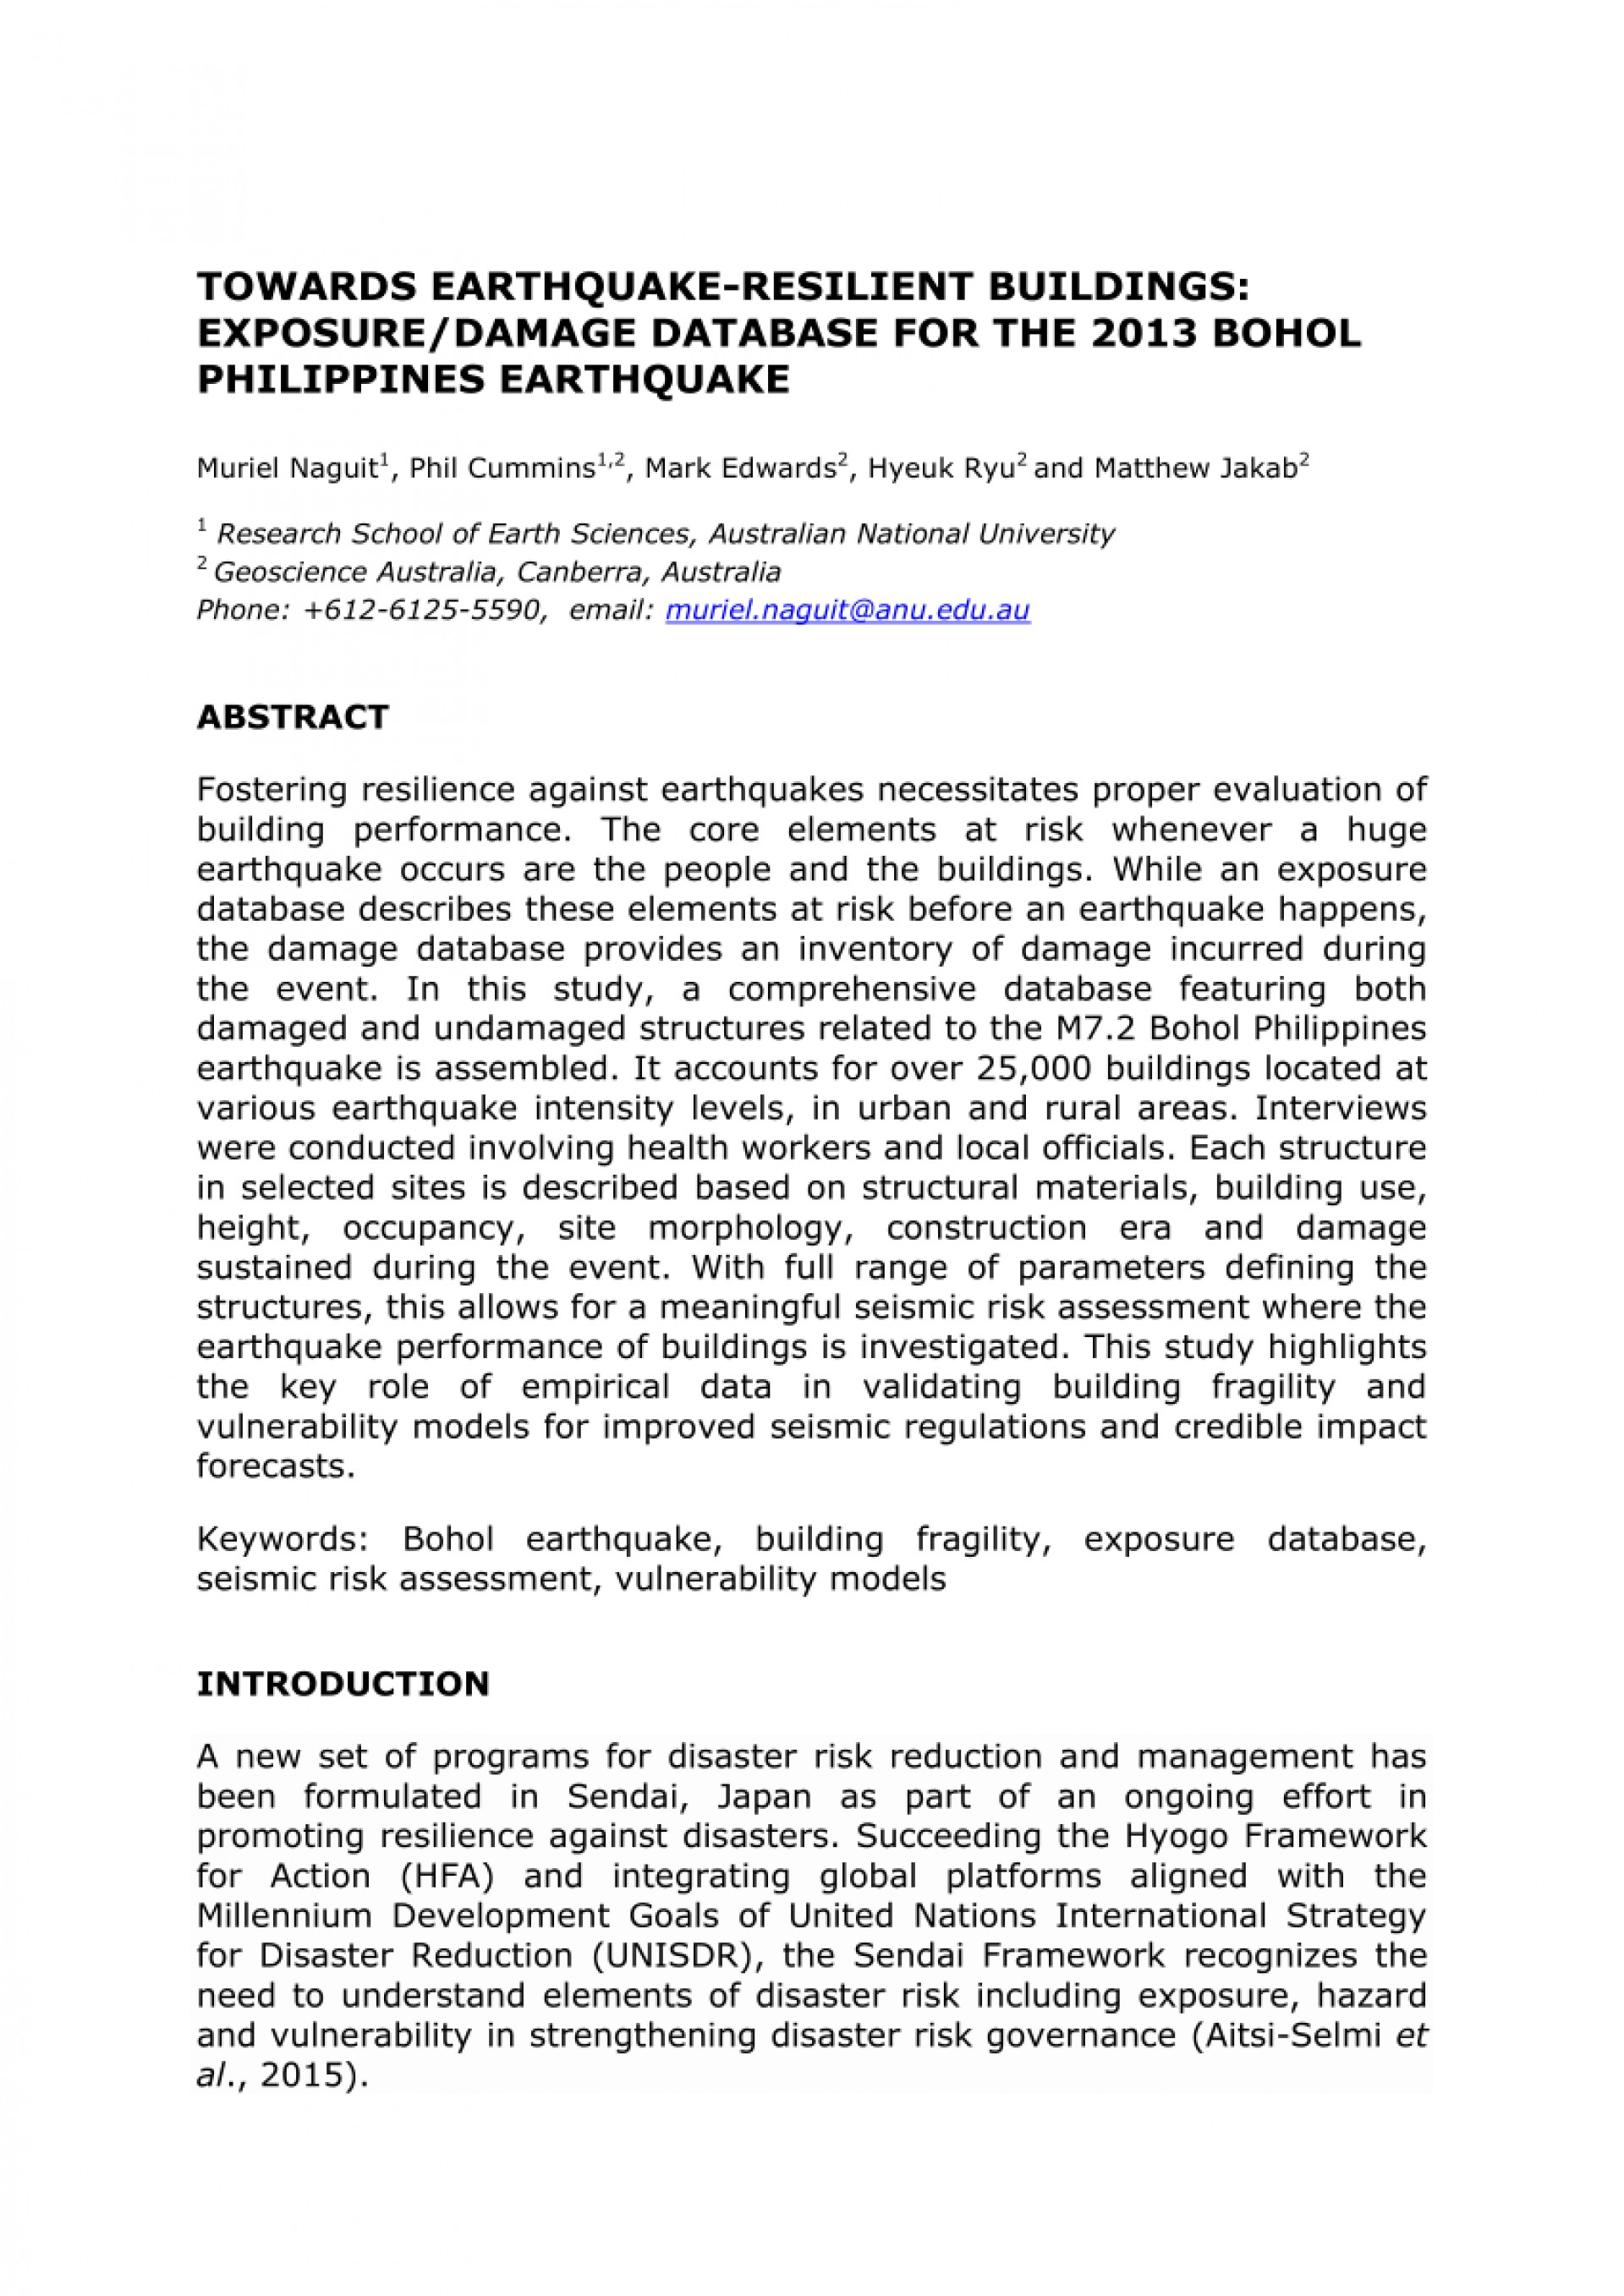 002 Earthquake Research Paper Pdf Philippines Wondrous 1920